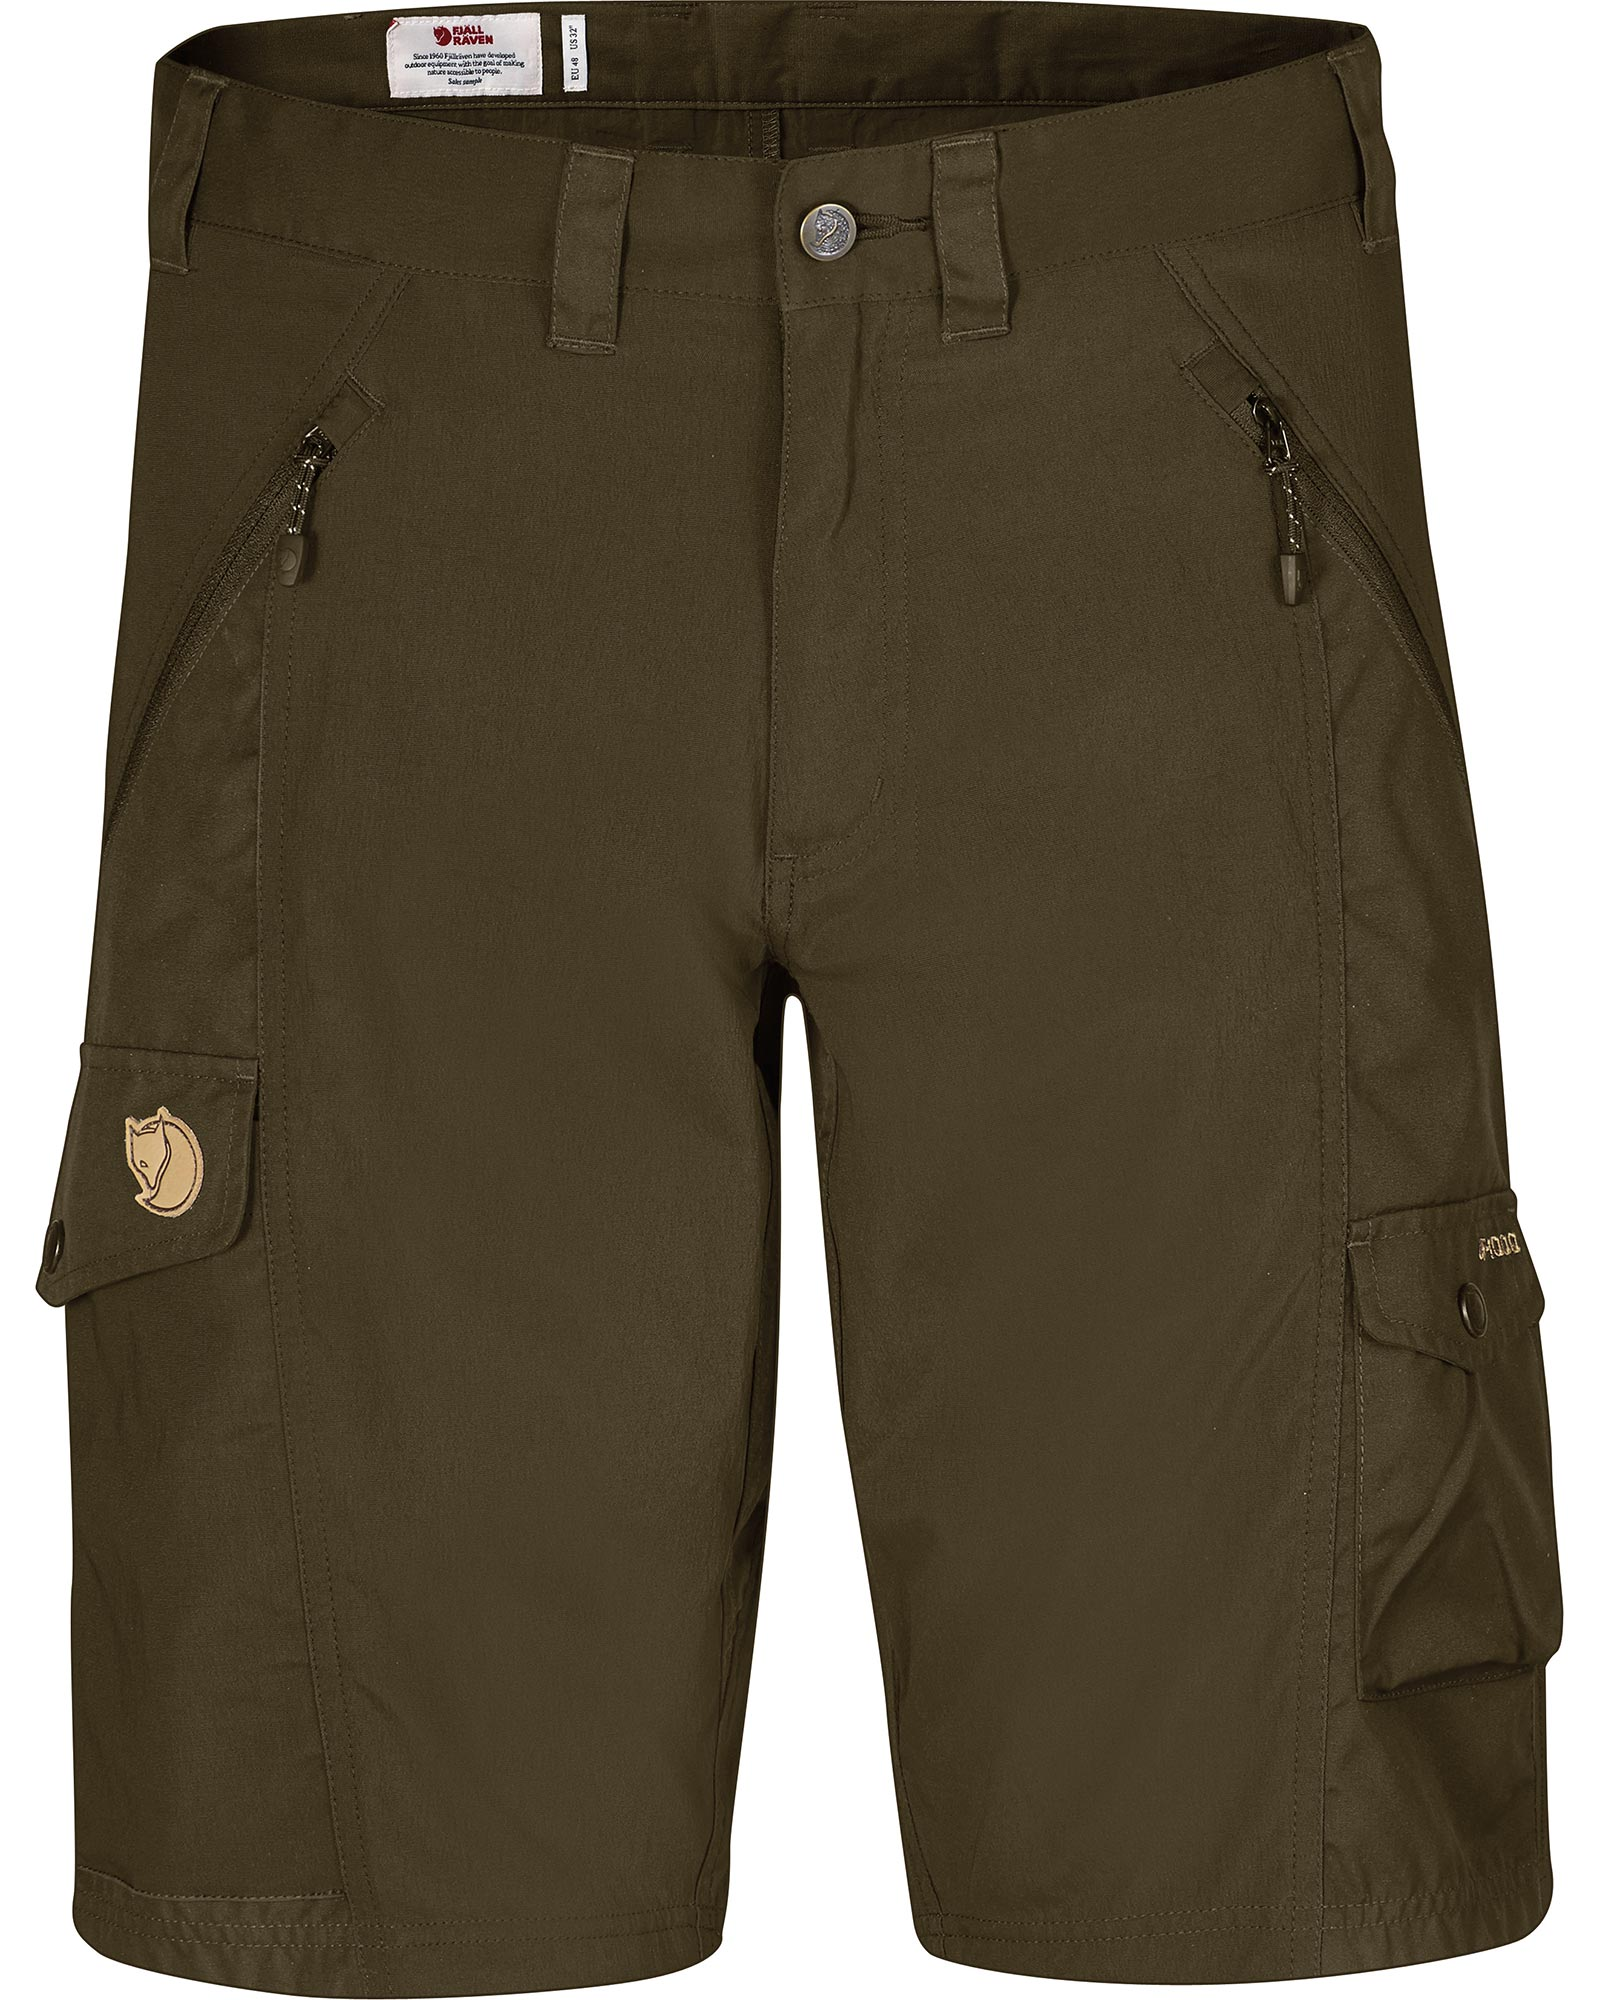 Fjallraven Men's Abisko G-1000 Eco Shorts 0